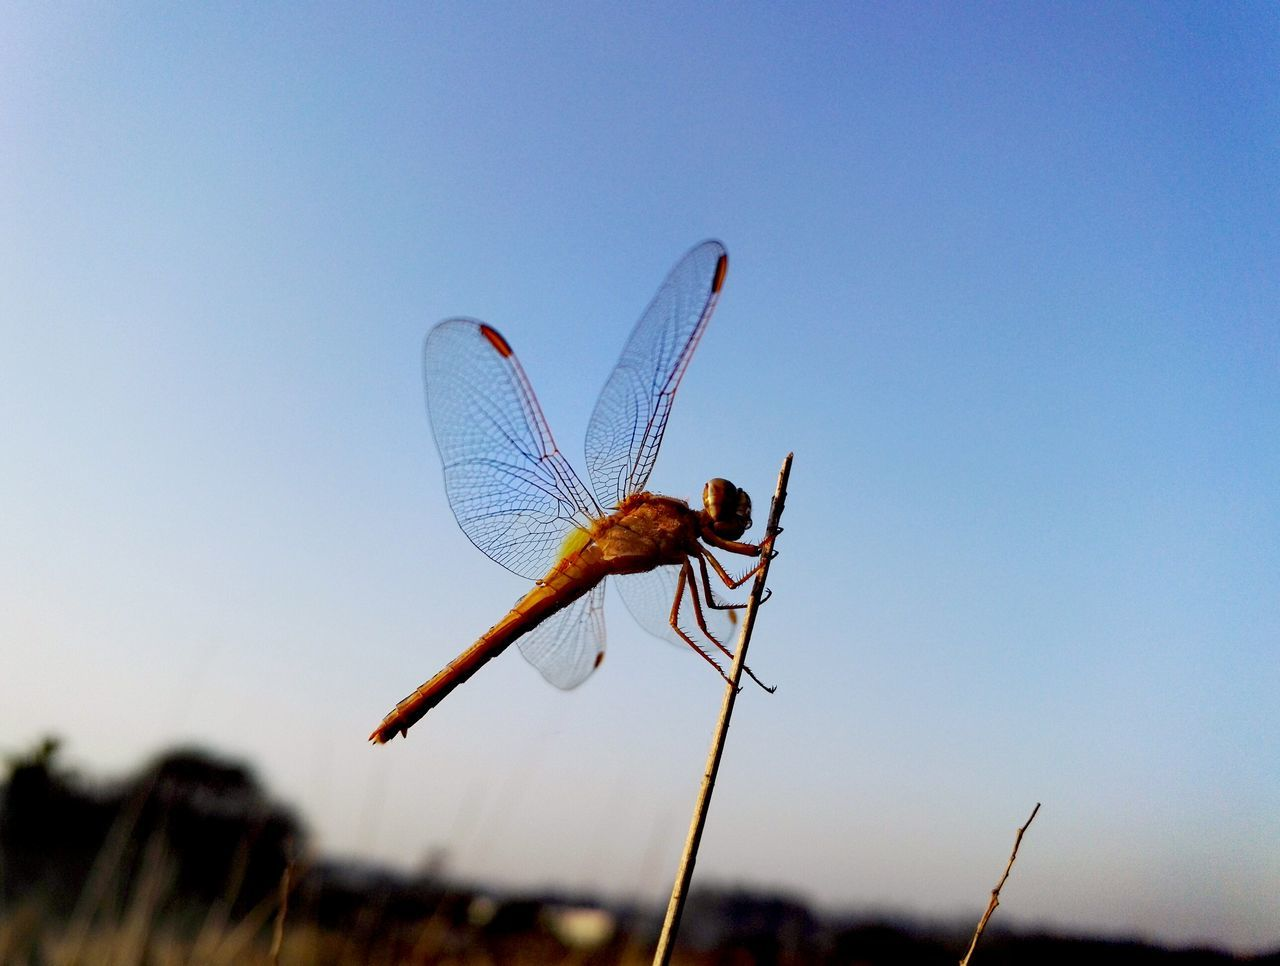 insect, animal themes, one animal, animals in the wild, nature, no people, blue, focus on foreground, day, outdoors, close-up, clear sky, plant, damselfly, beauty in nature